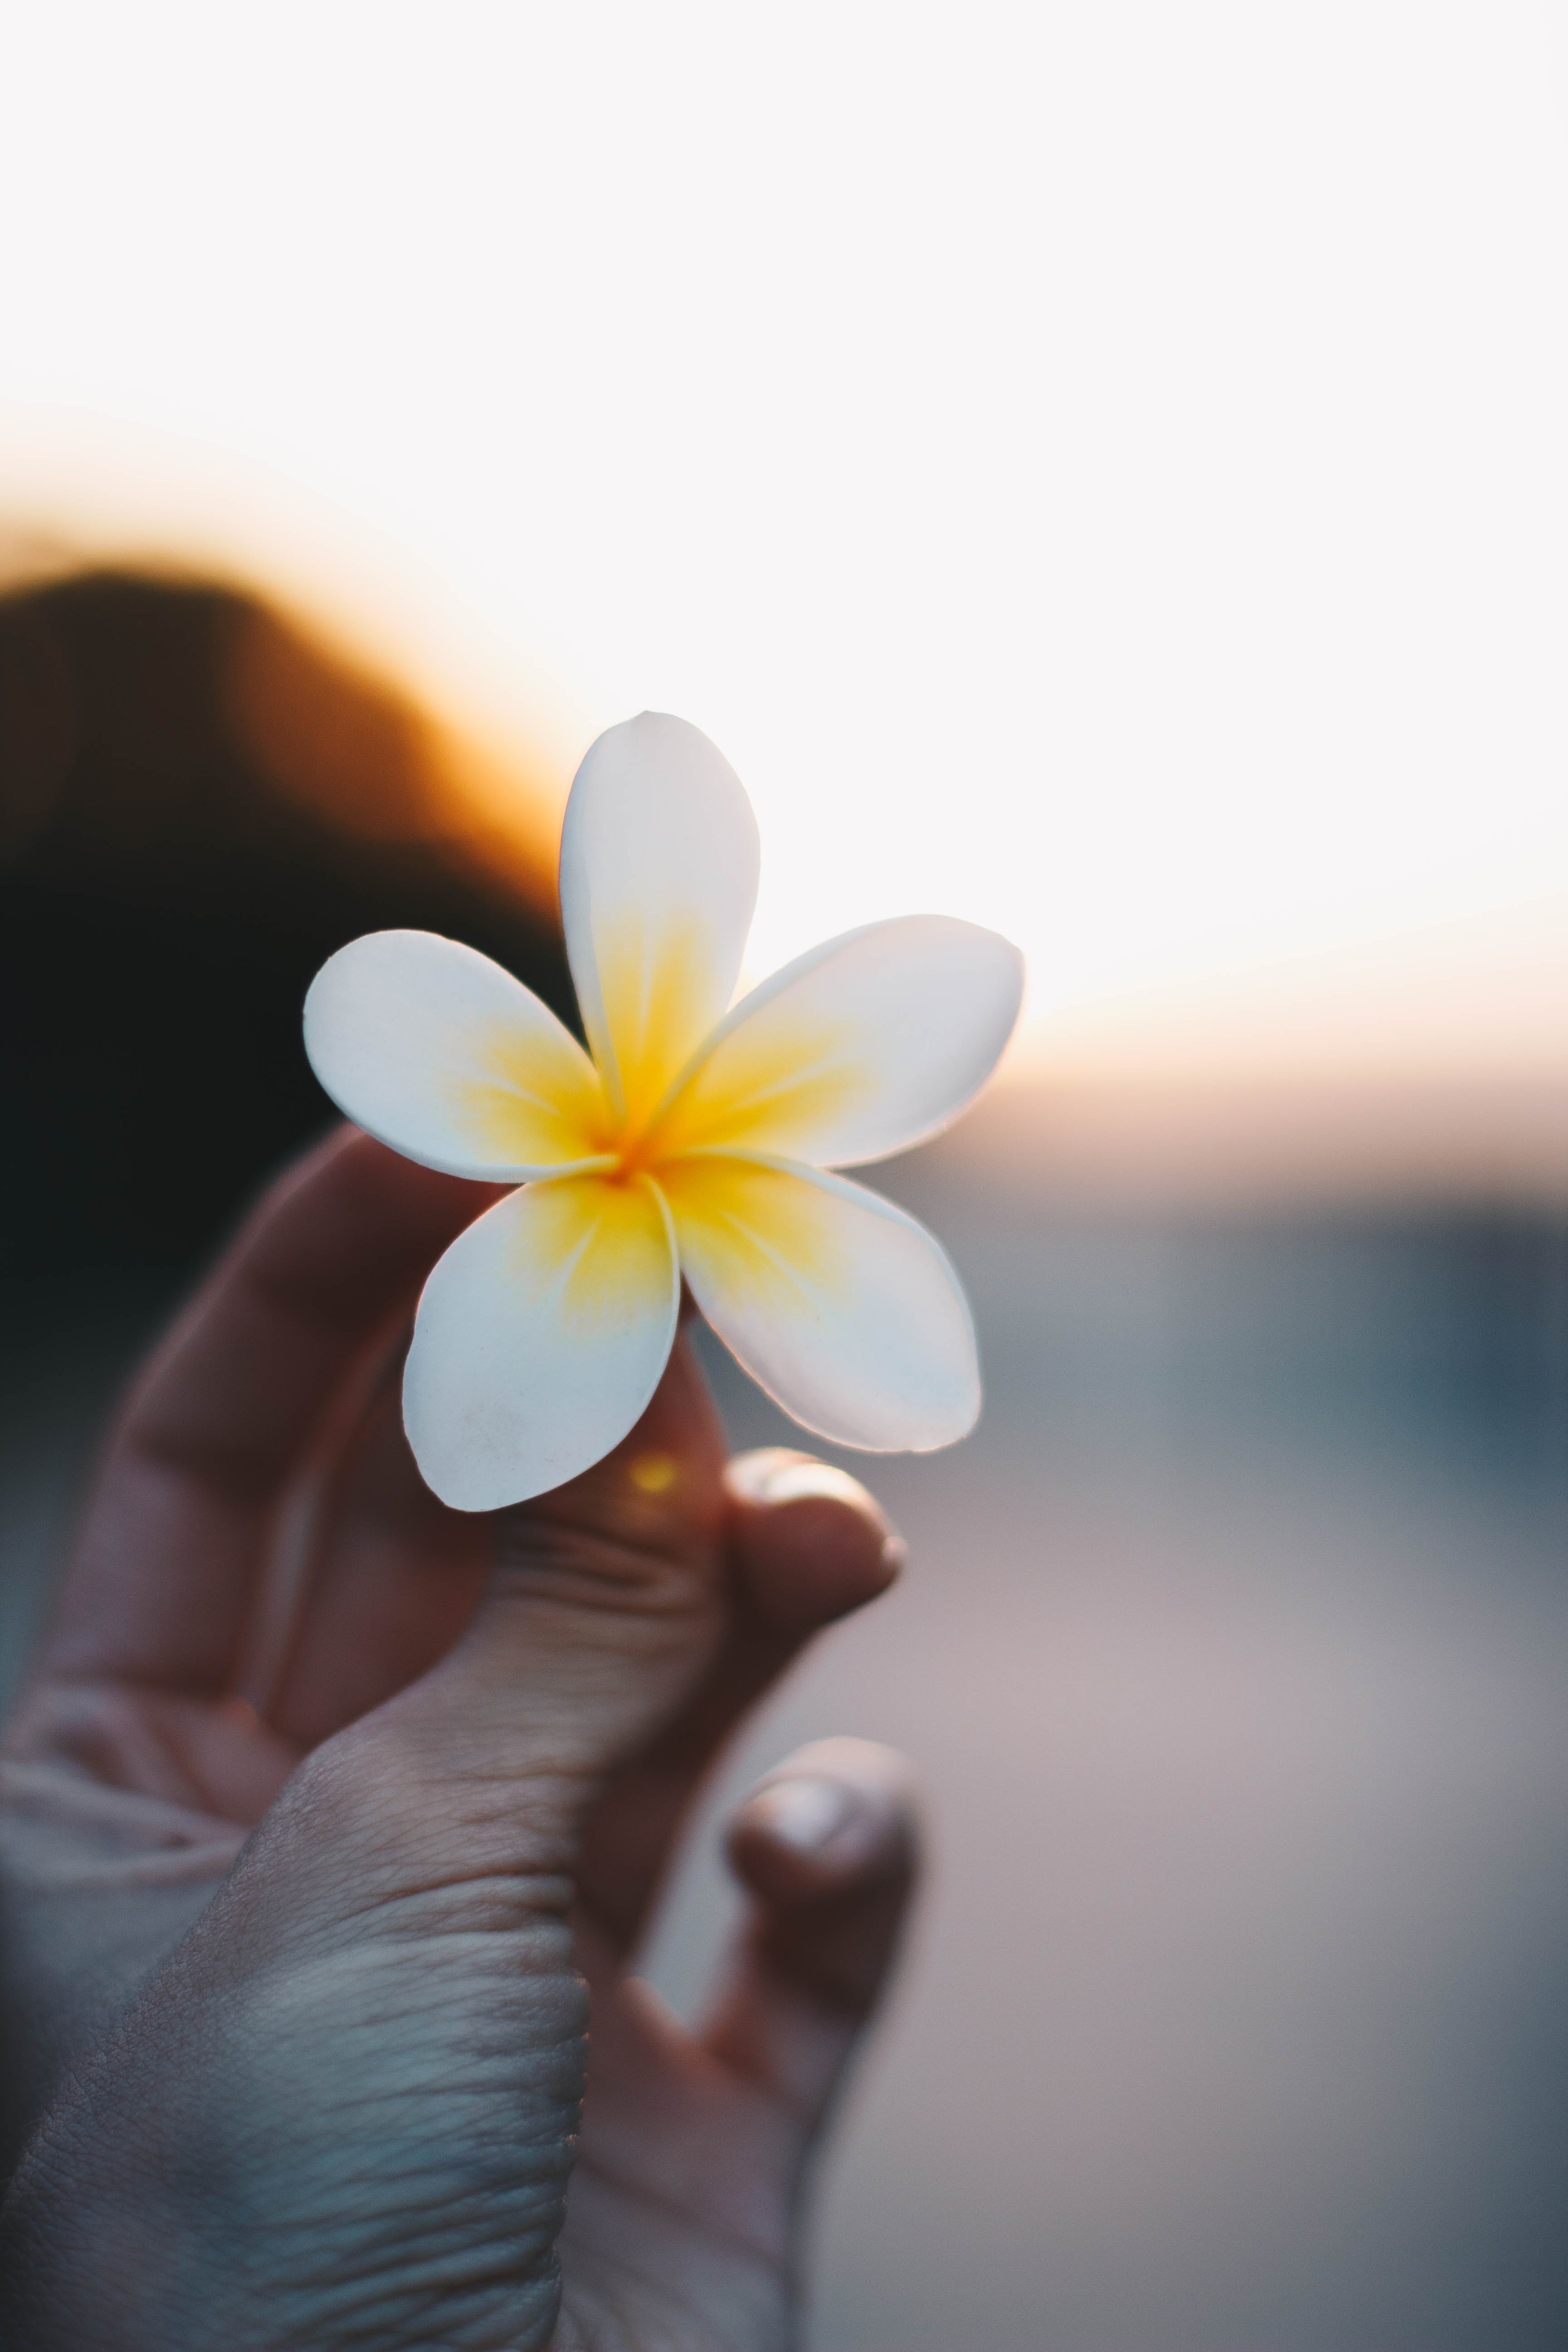 Close-up Photo of a Person Holding a Flower